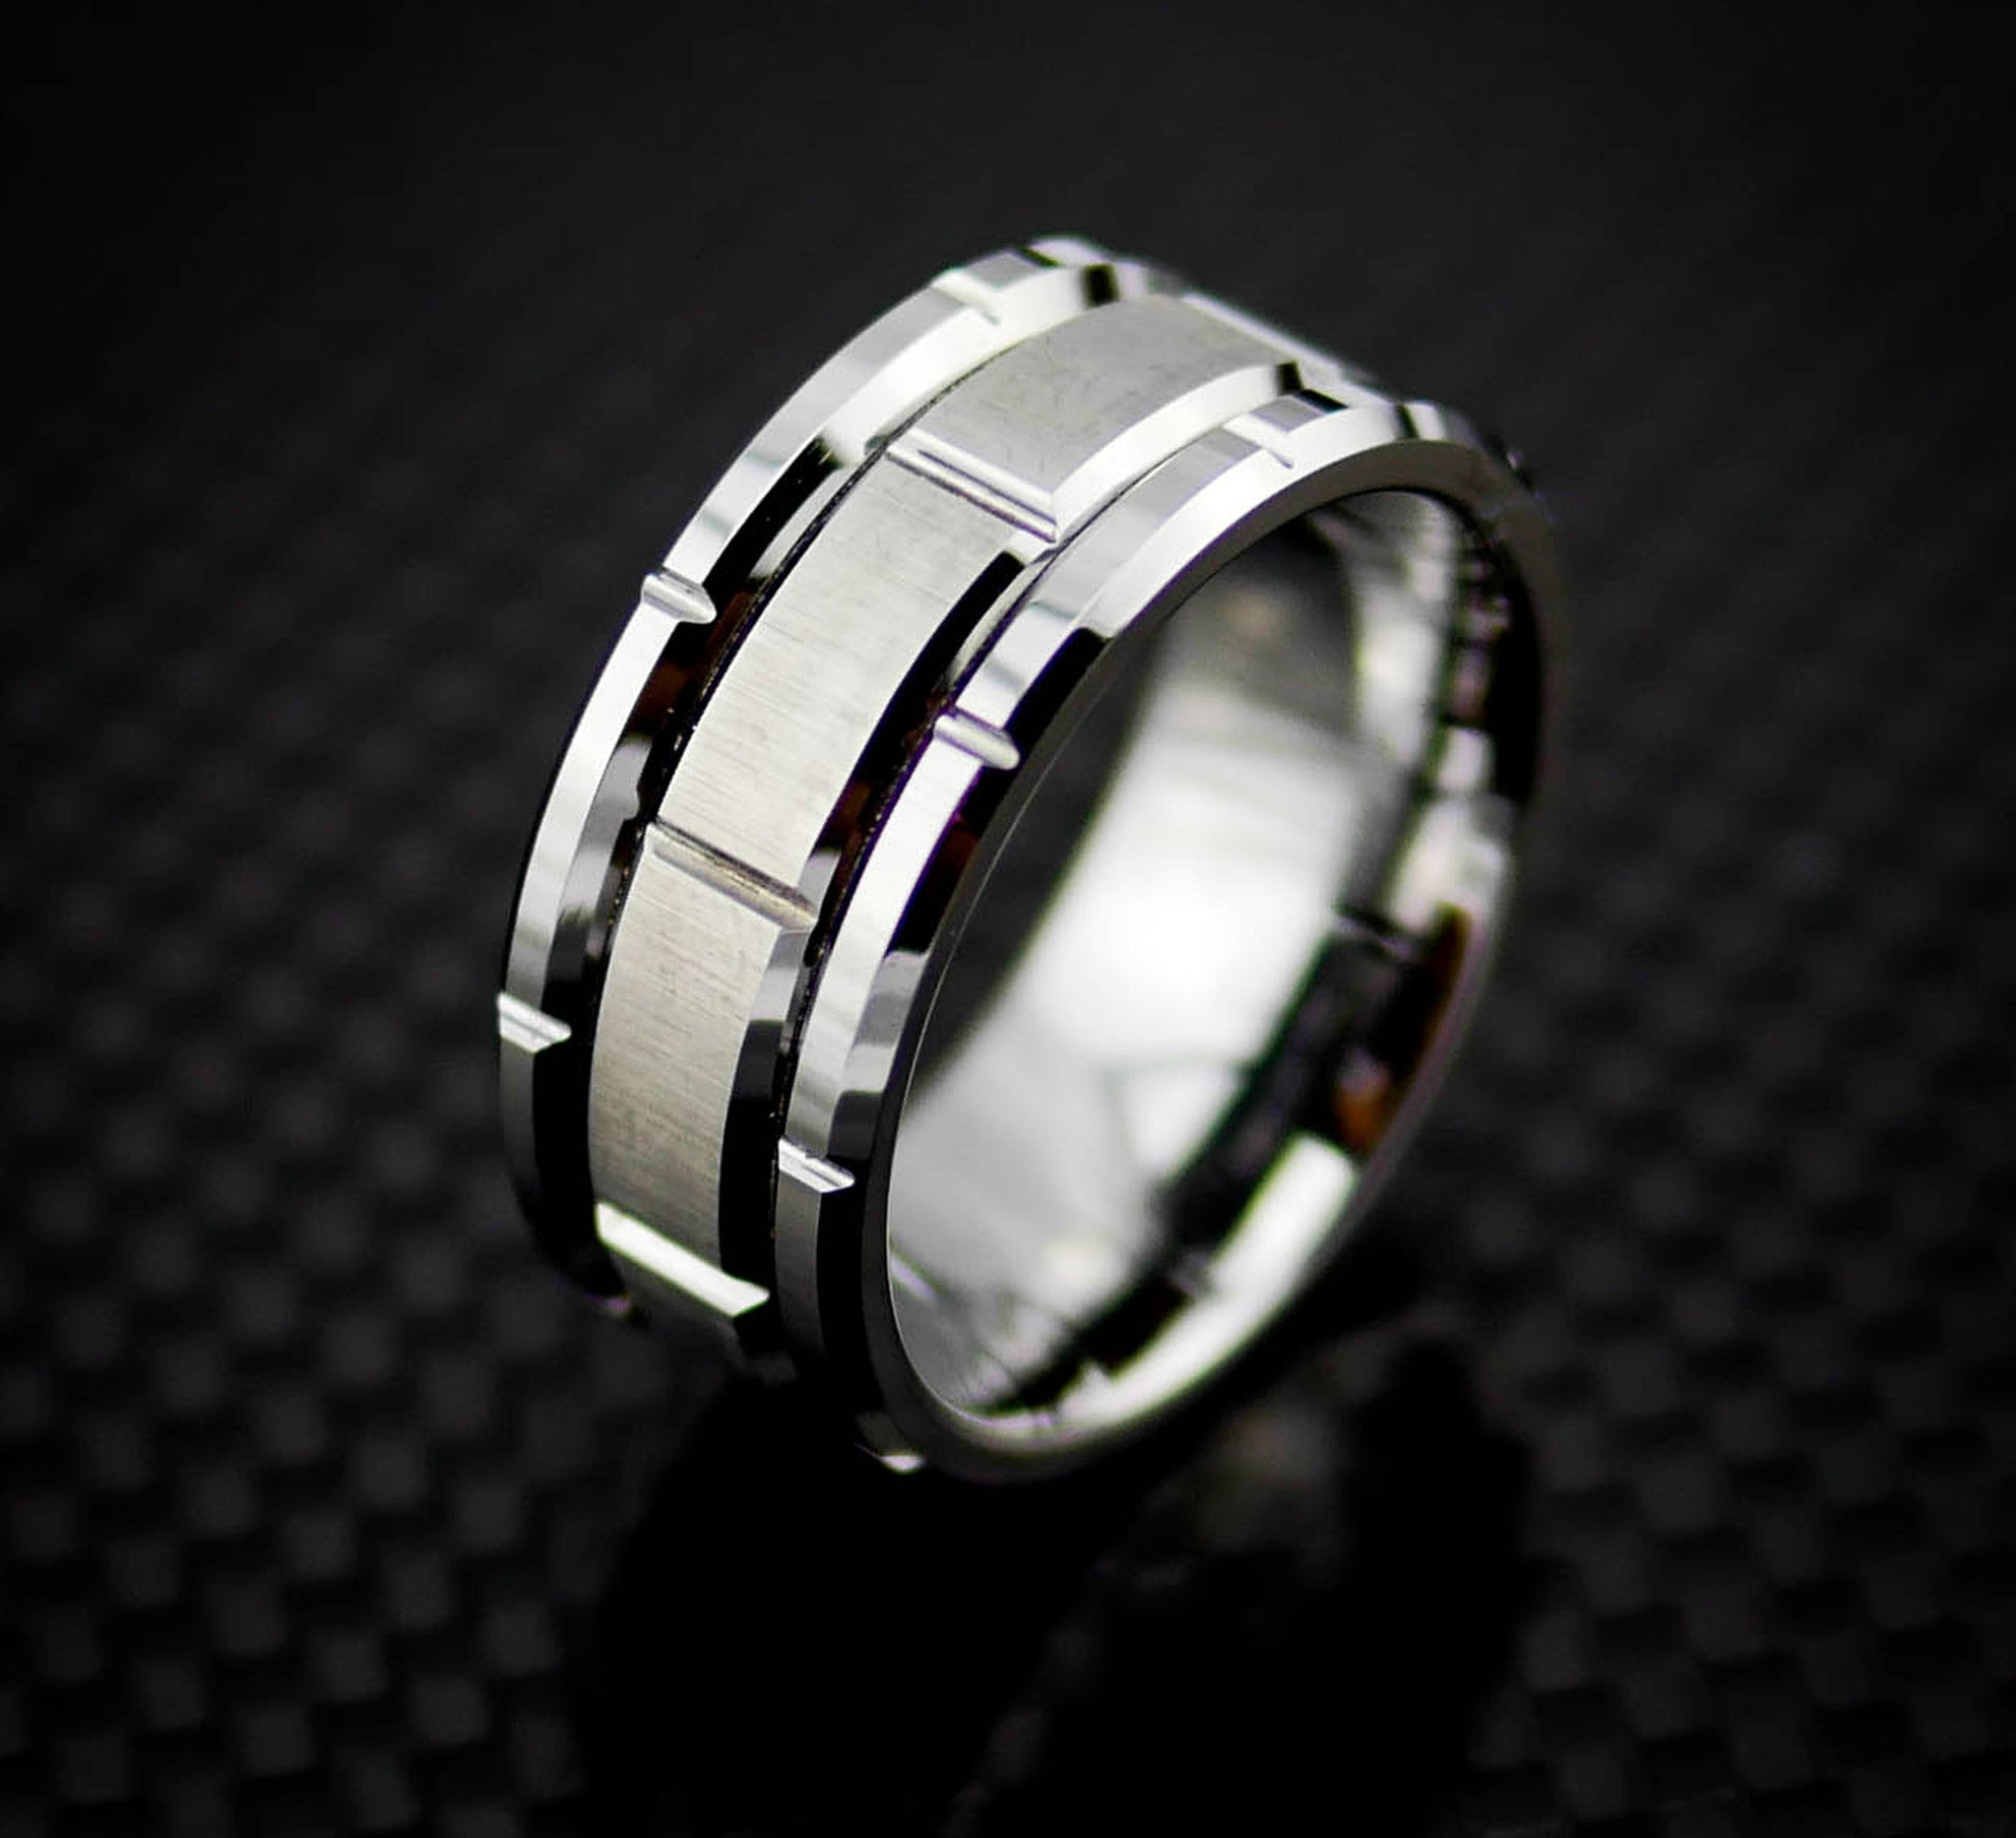 finish silver tungsten with w band rings photo ring cool products beveled anodized diagonal wedding wholesale inner ceramic red and bands brushed polished edges aluminum